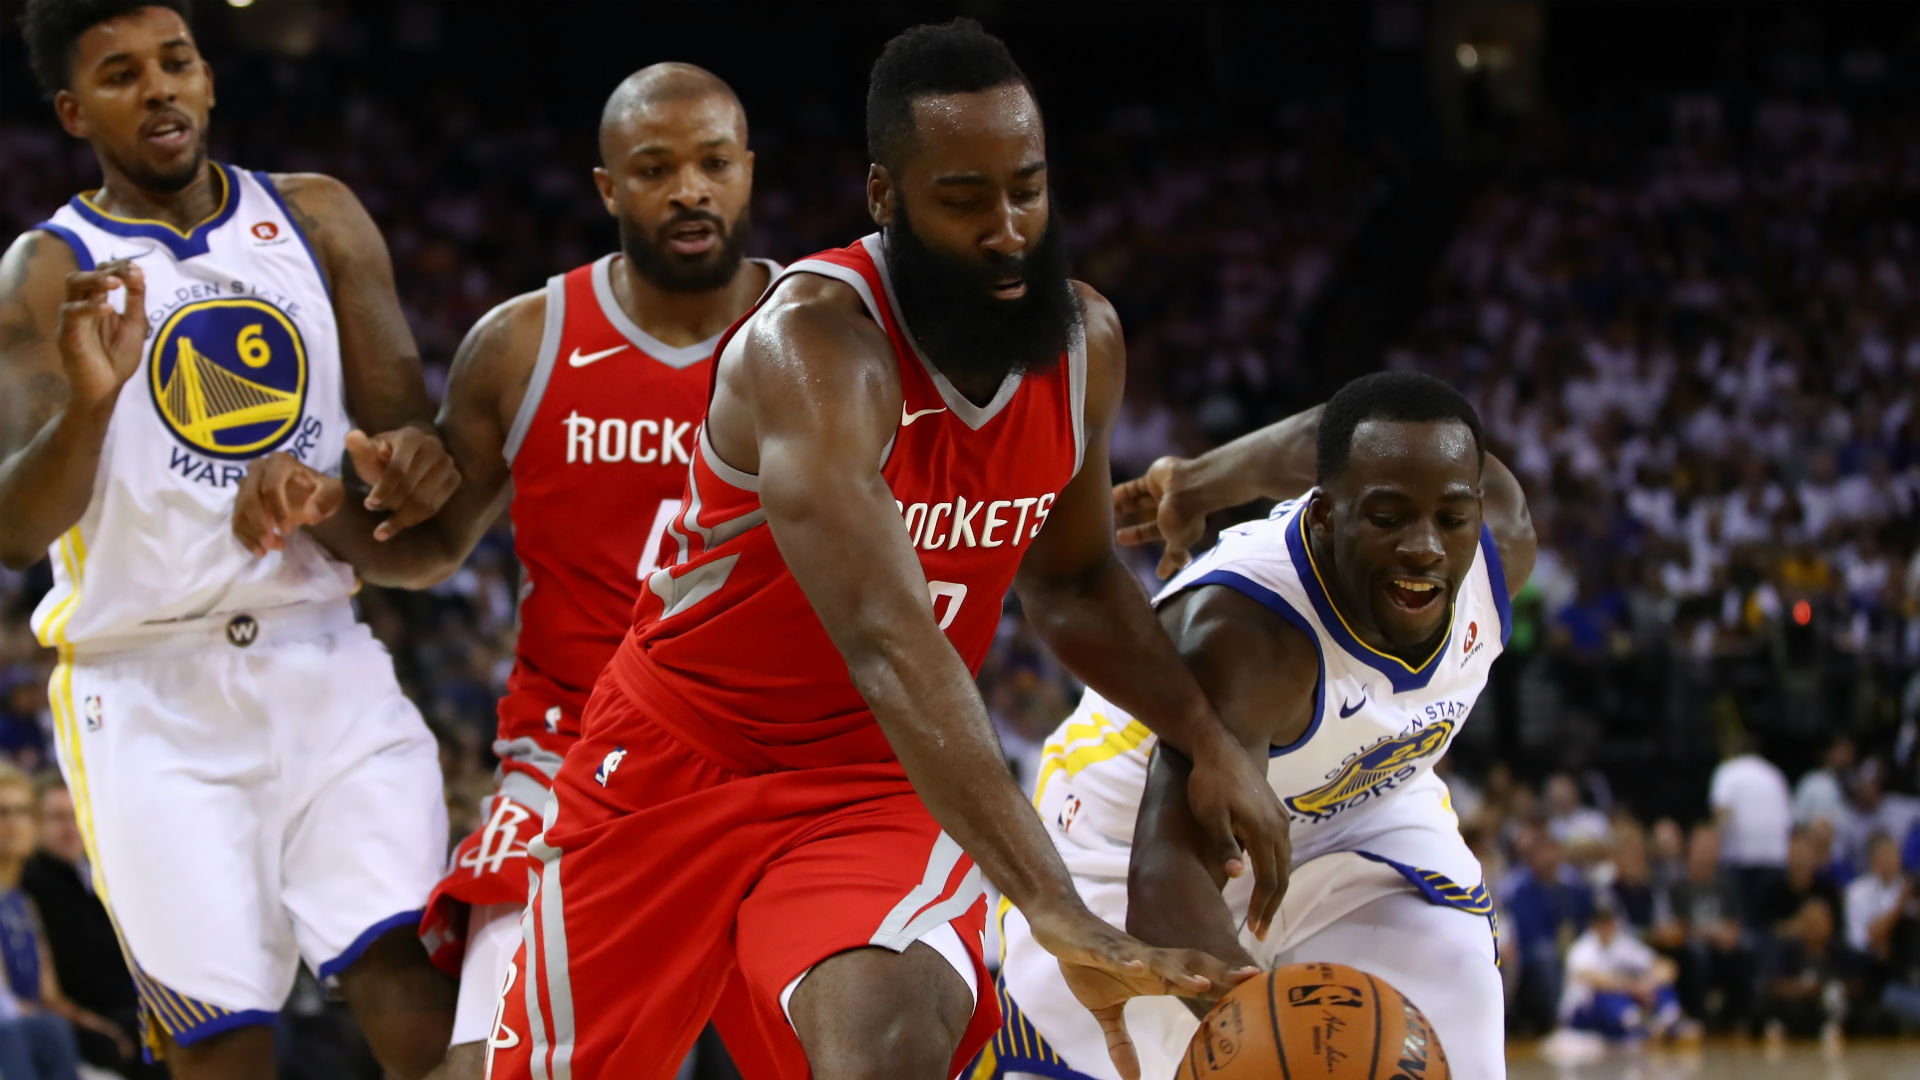 How do Rockets match up against Warriors?